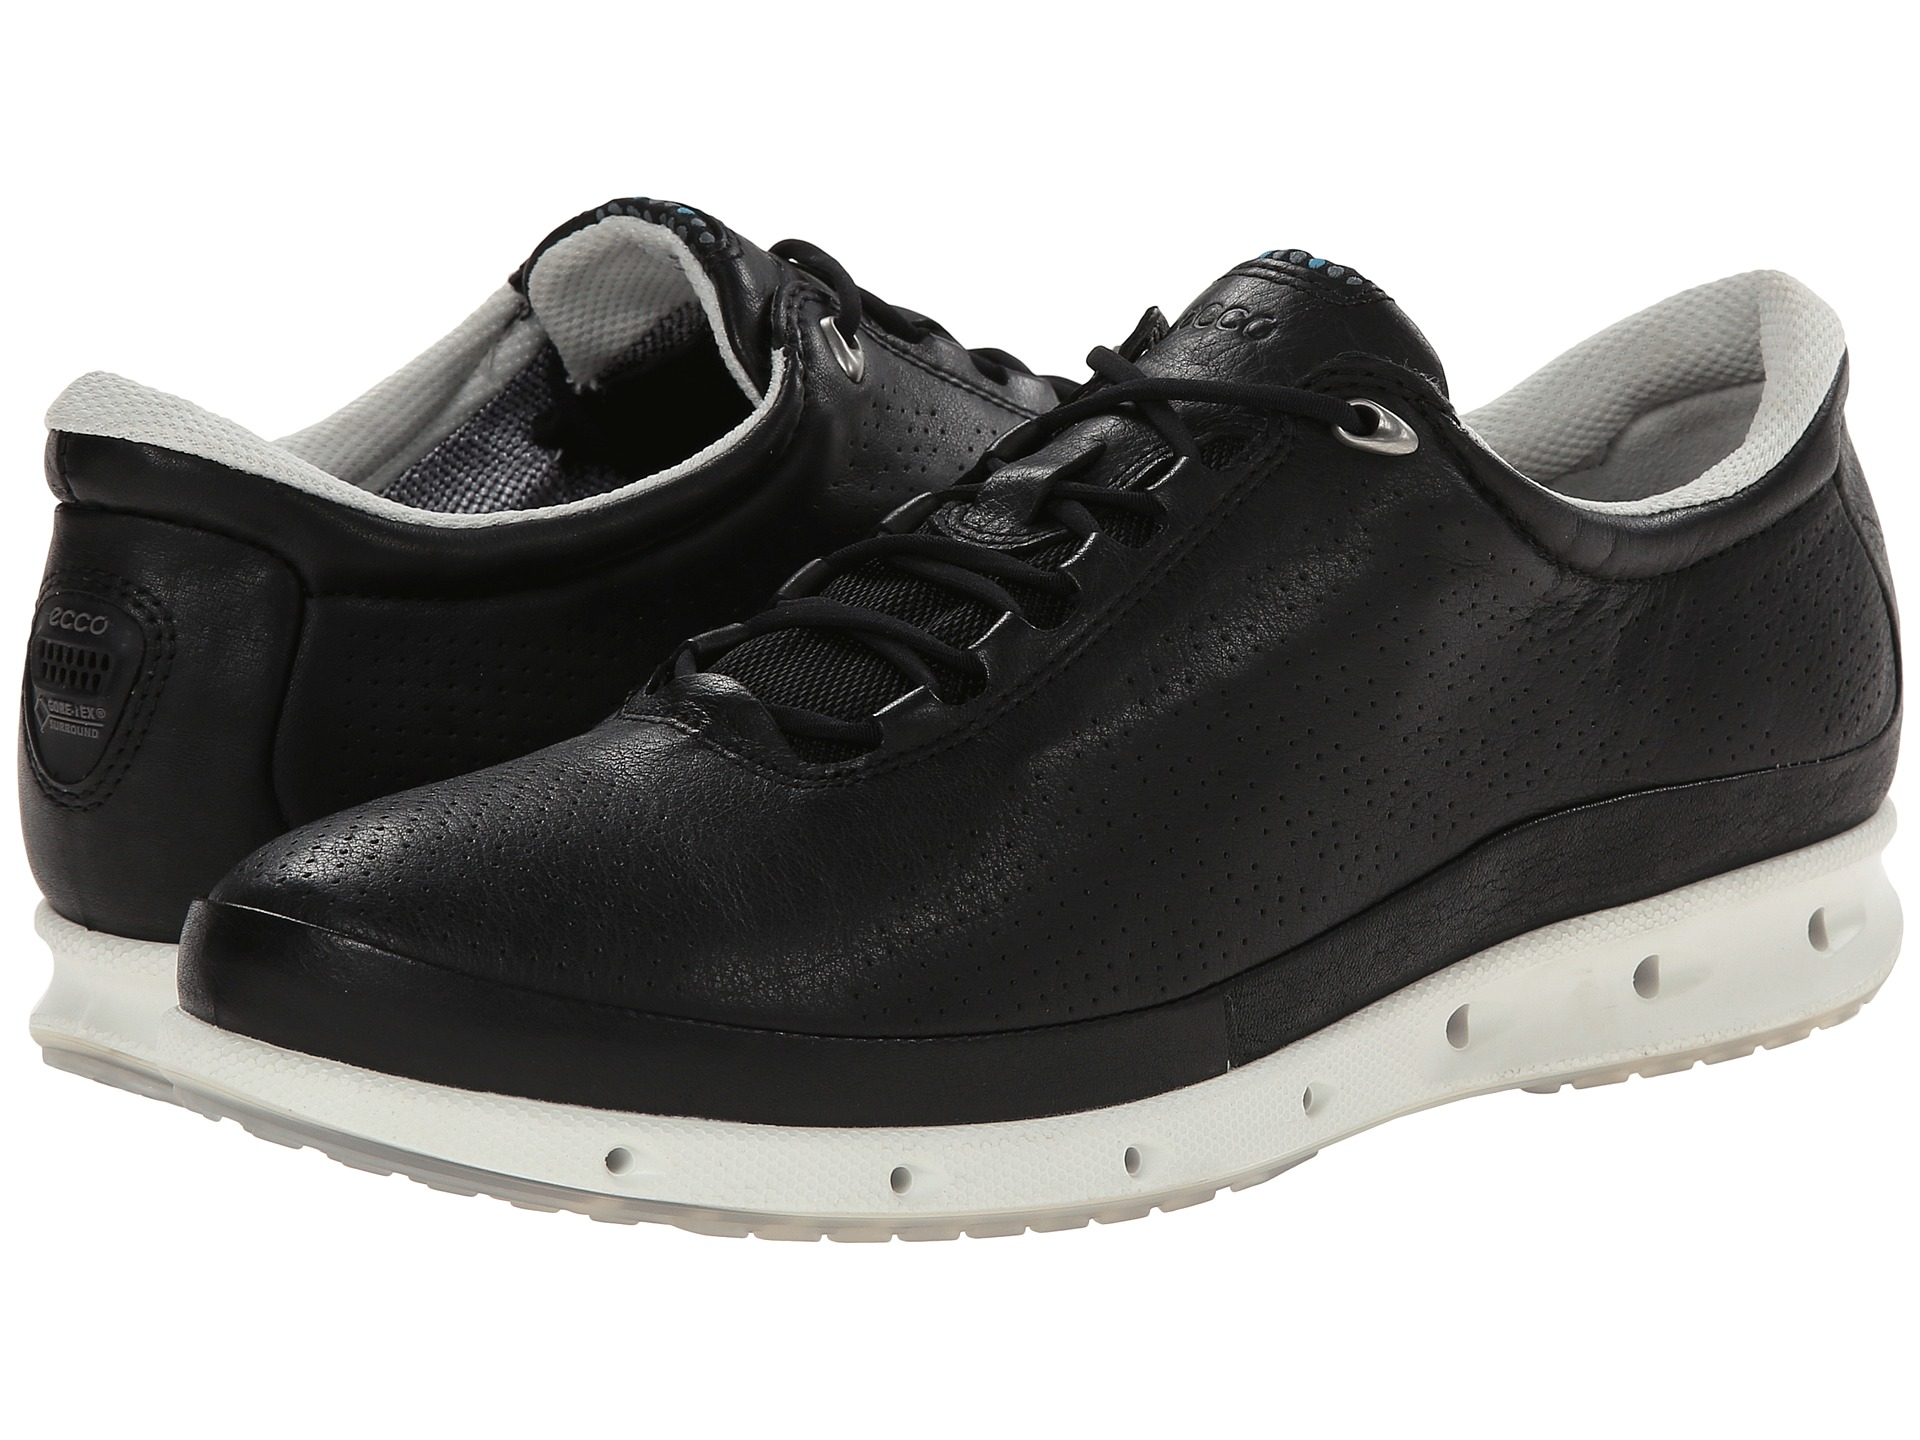 Ecco Womens Shoes Size